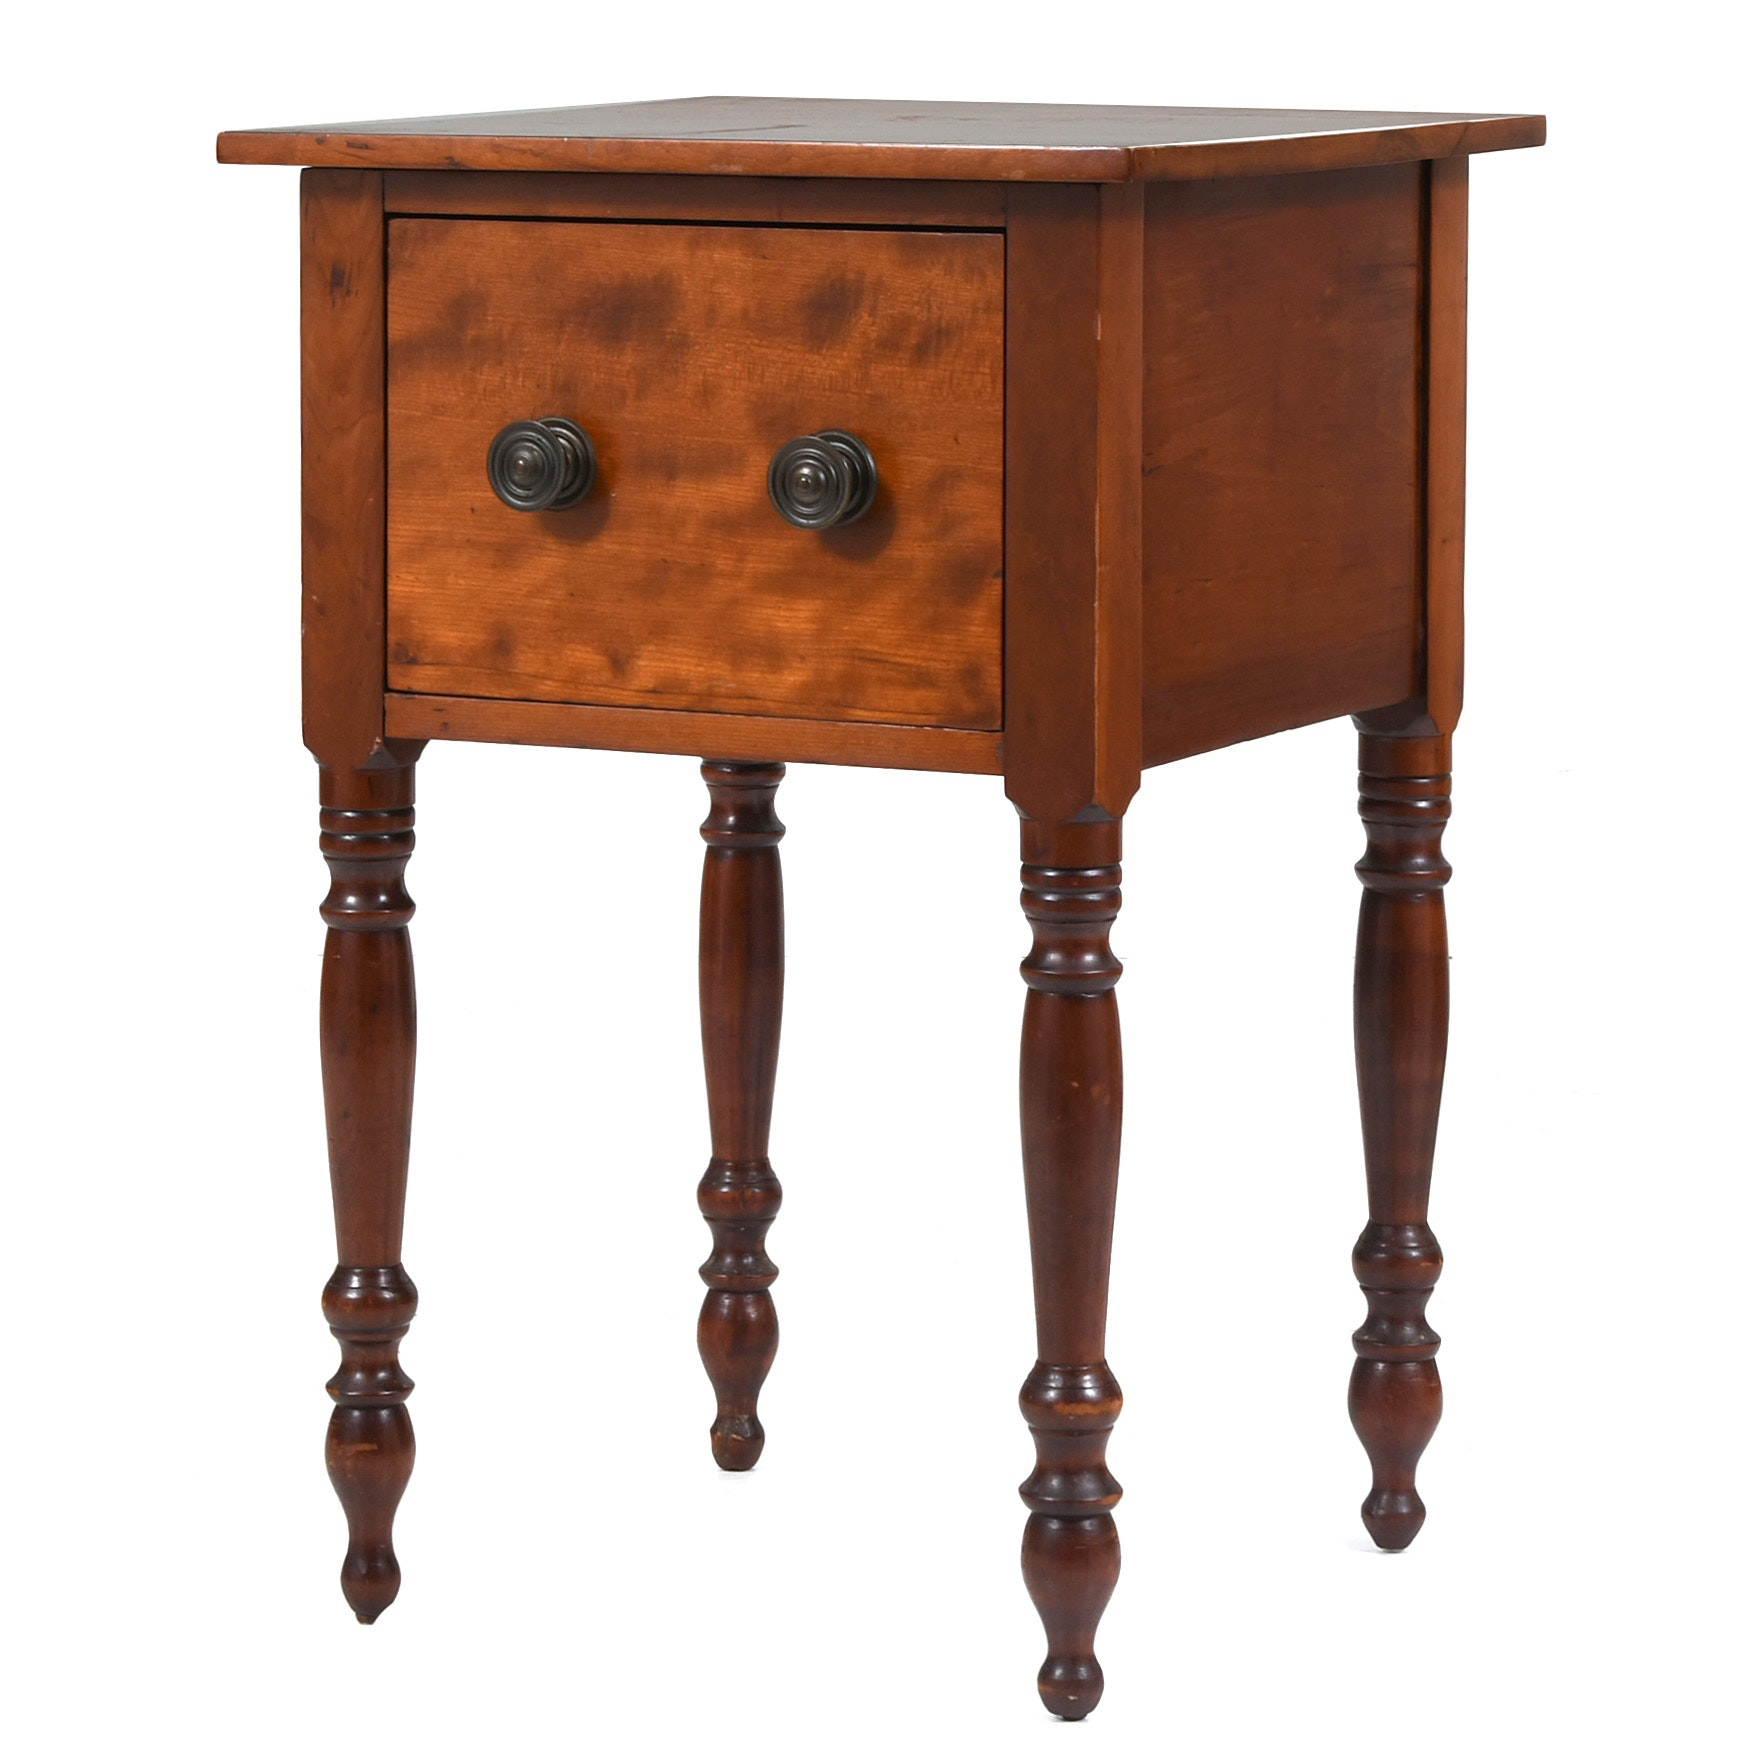 Late Federal Cherry One-Drawer Stand, Possibly Southern, Circa 1820-1840